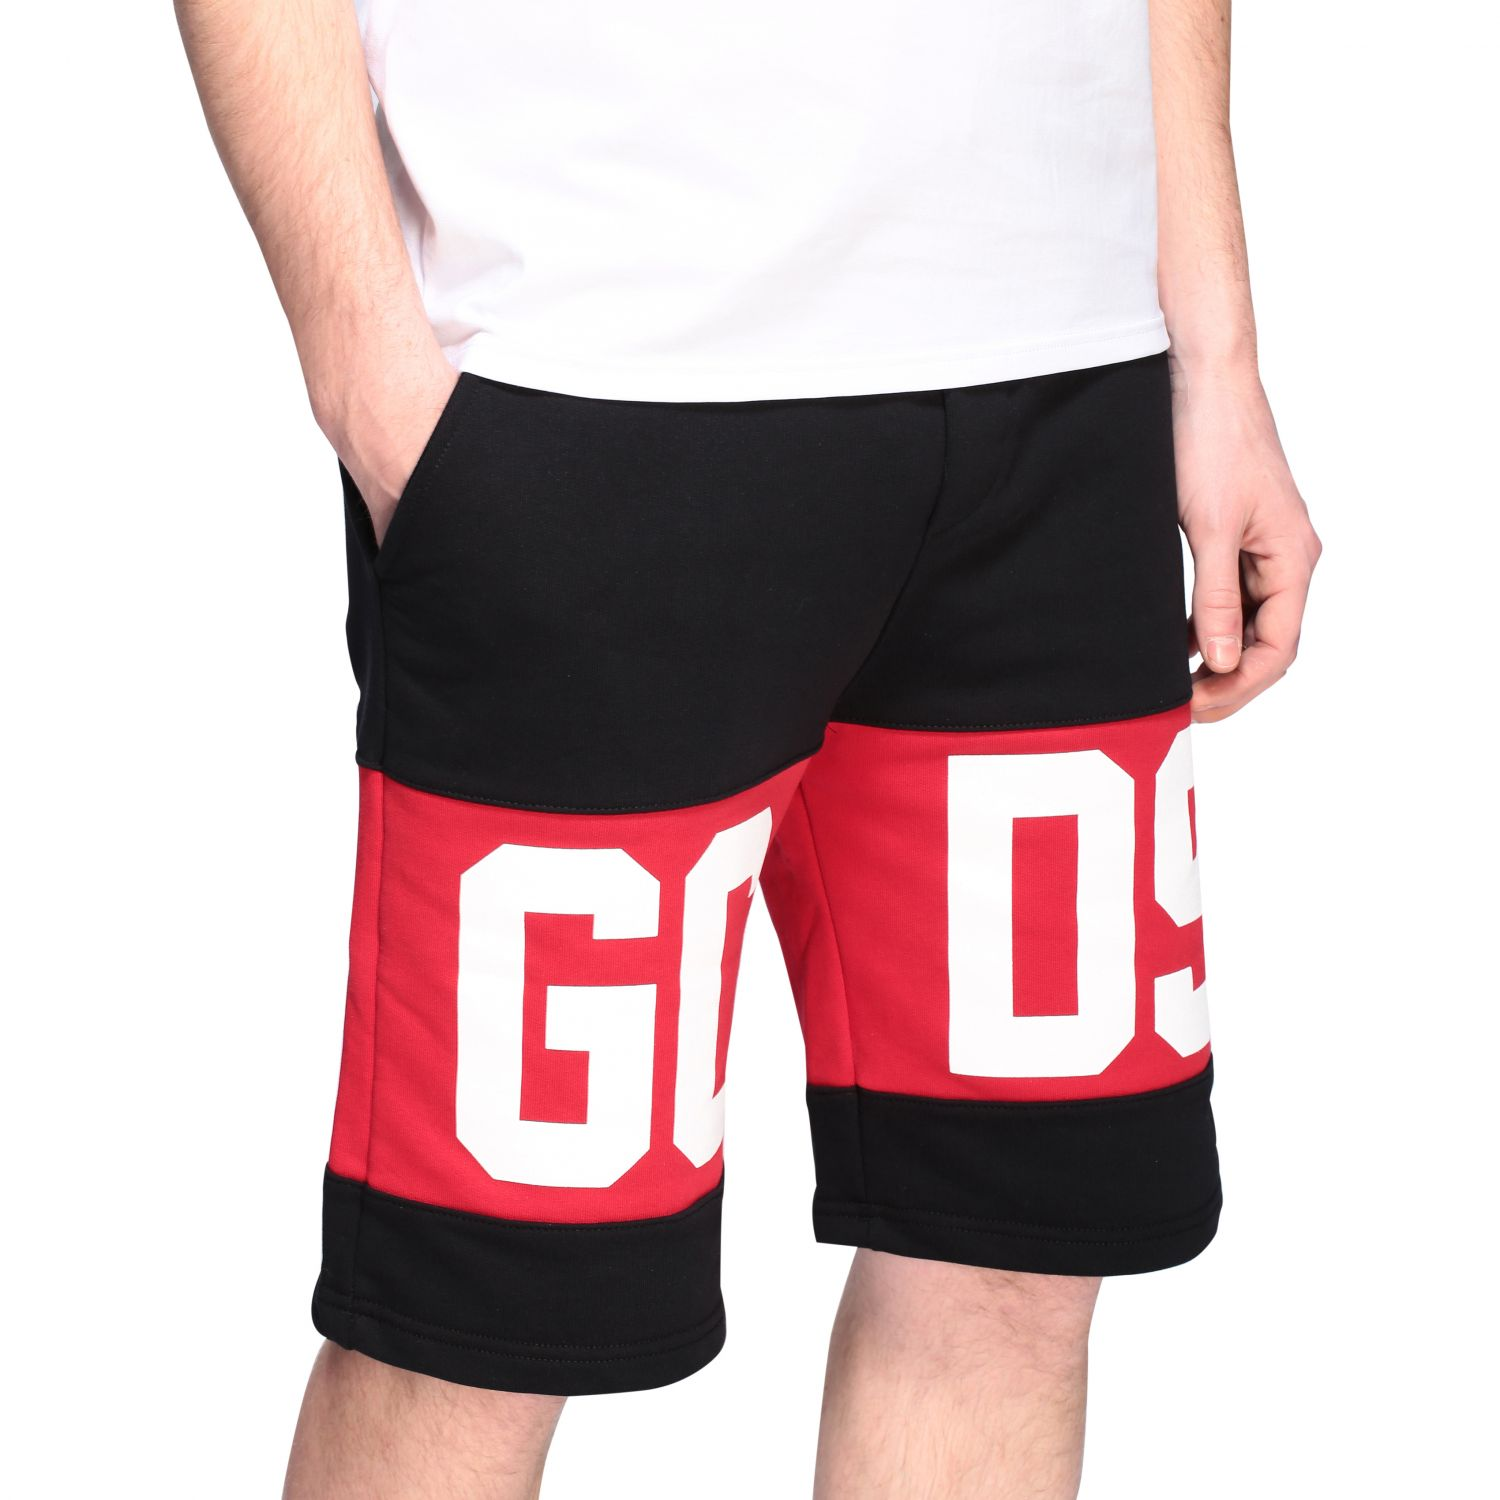 Short men Gcds black 5